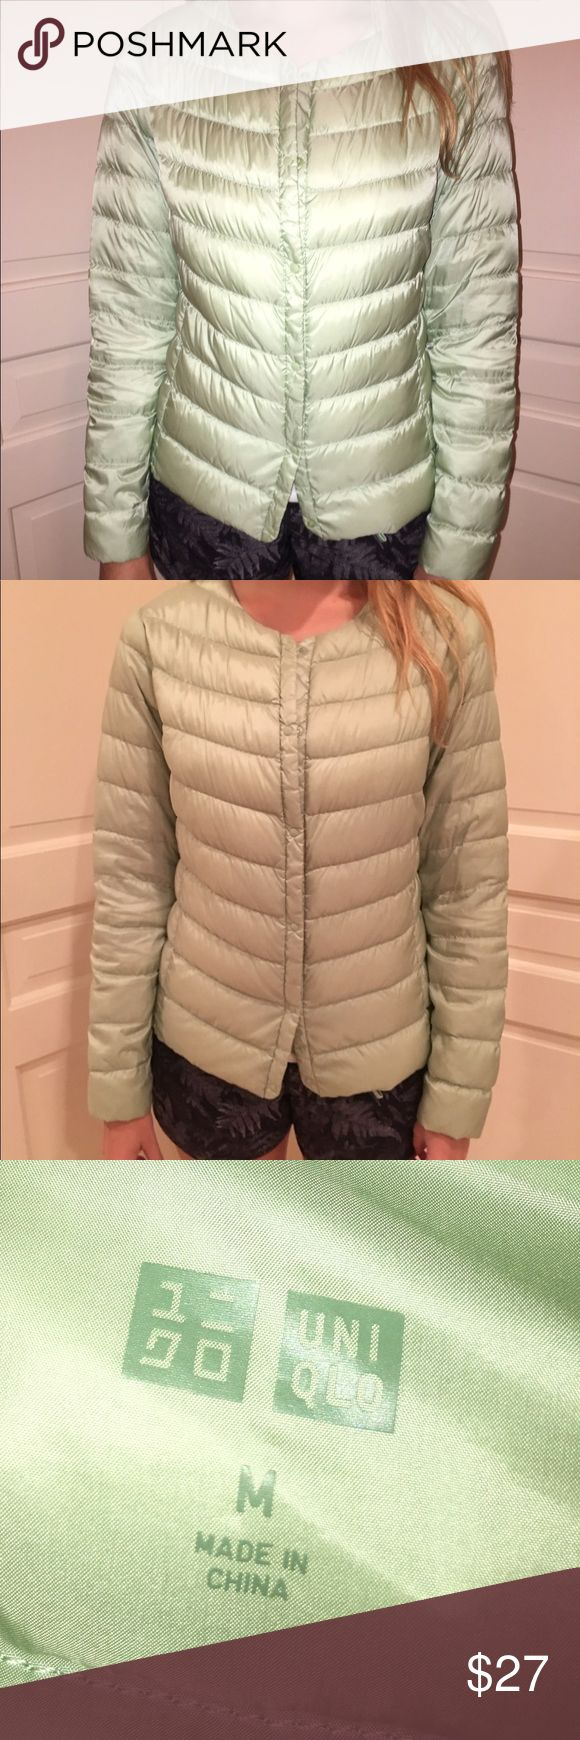 Uniqlo Jacket Great conditions, worn once, very soft Uniqlo Jackets & Coats